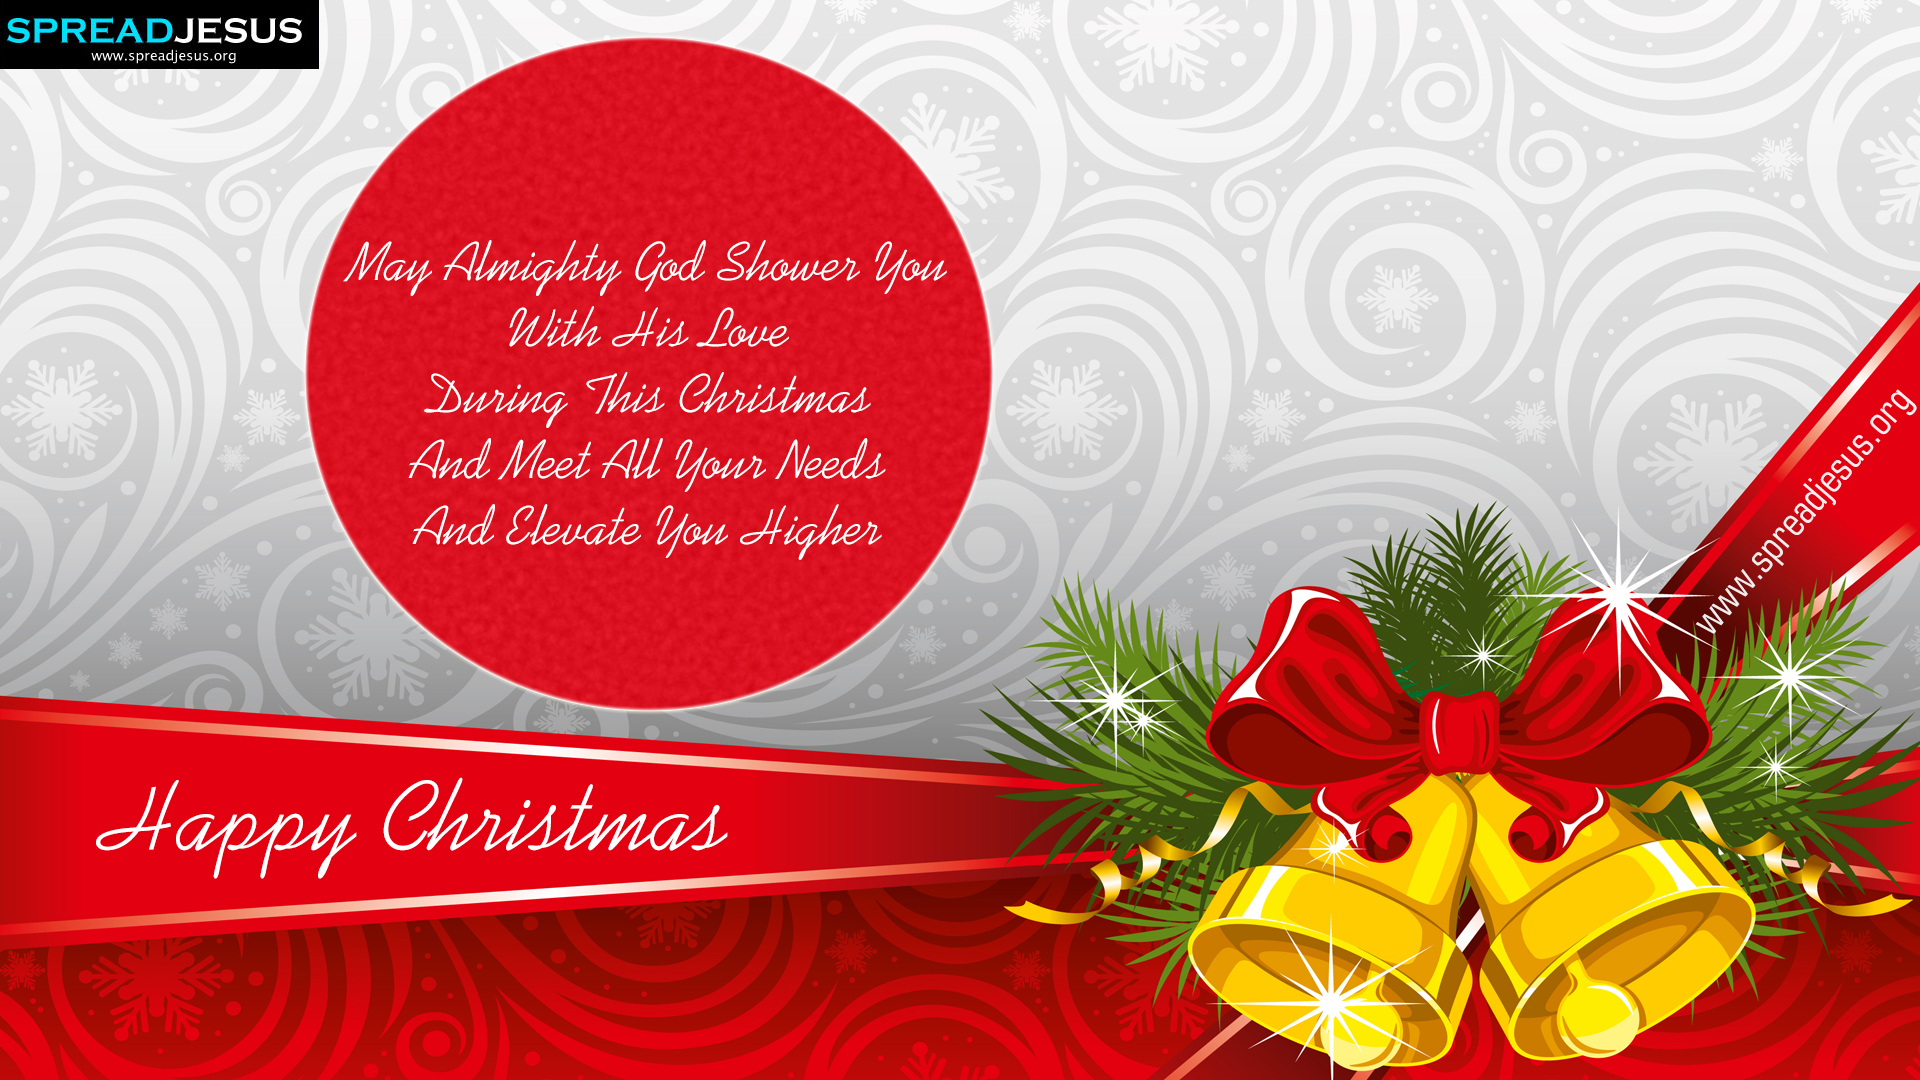 HAPPY CHRISTMAS QUOTES HD WALLPAPERS DOWNLOAD Happy Christmas Hd Wallpapers  Free Download